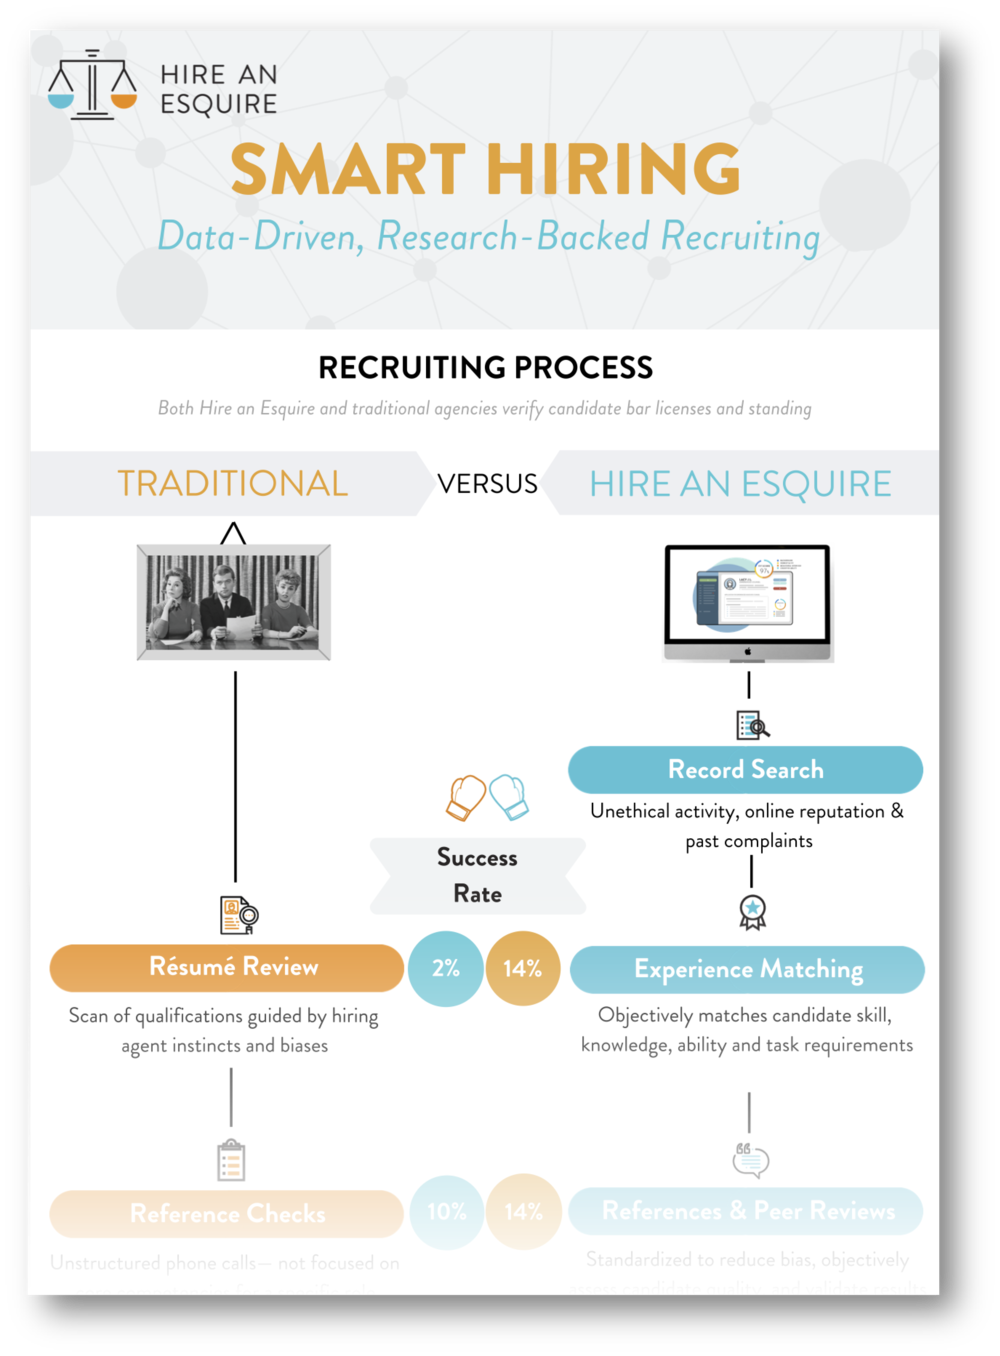 "The Smart Hiring Guide - • The traditional legal staffing agency vs. Hire an Esquire's data-driven approach• Insight into our ""Moneyball"" method and assessment of paralegal and lawyer soft skills— and how this gives law practices a talent edge• How our technology and soft skills assessment makes freelance attorneys and paralegals a way to not just scale but enhance your law firm or legal department"